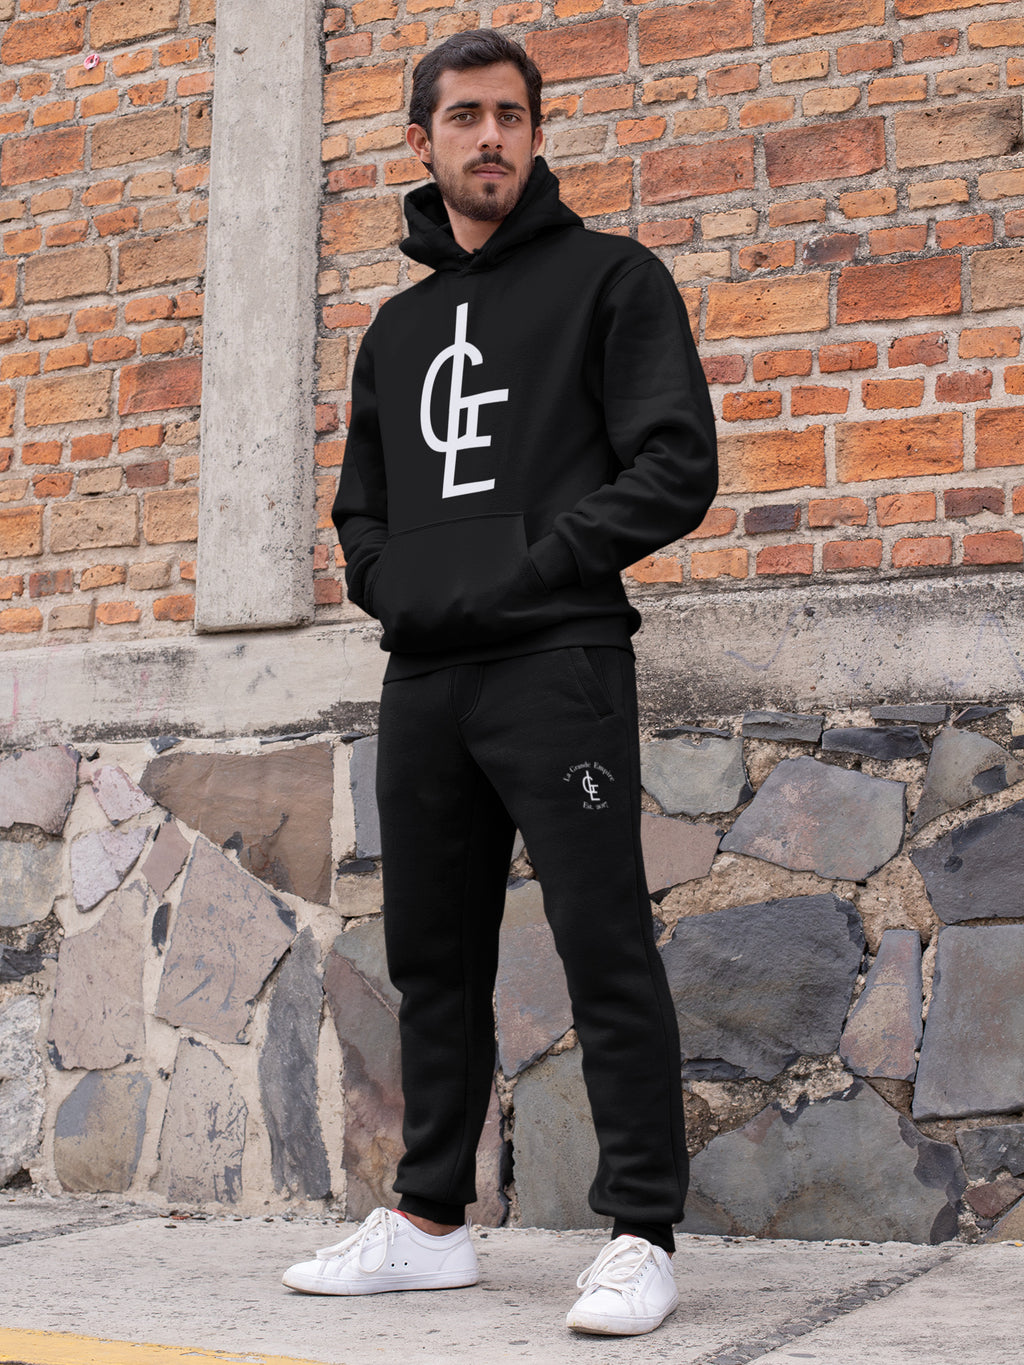 Blackout LGE Sweatsuit